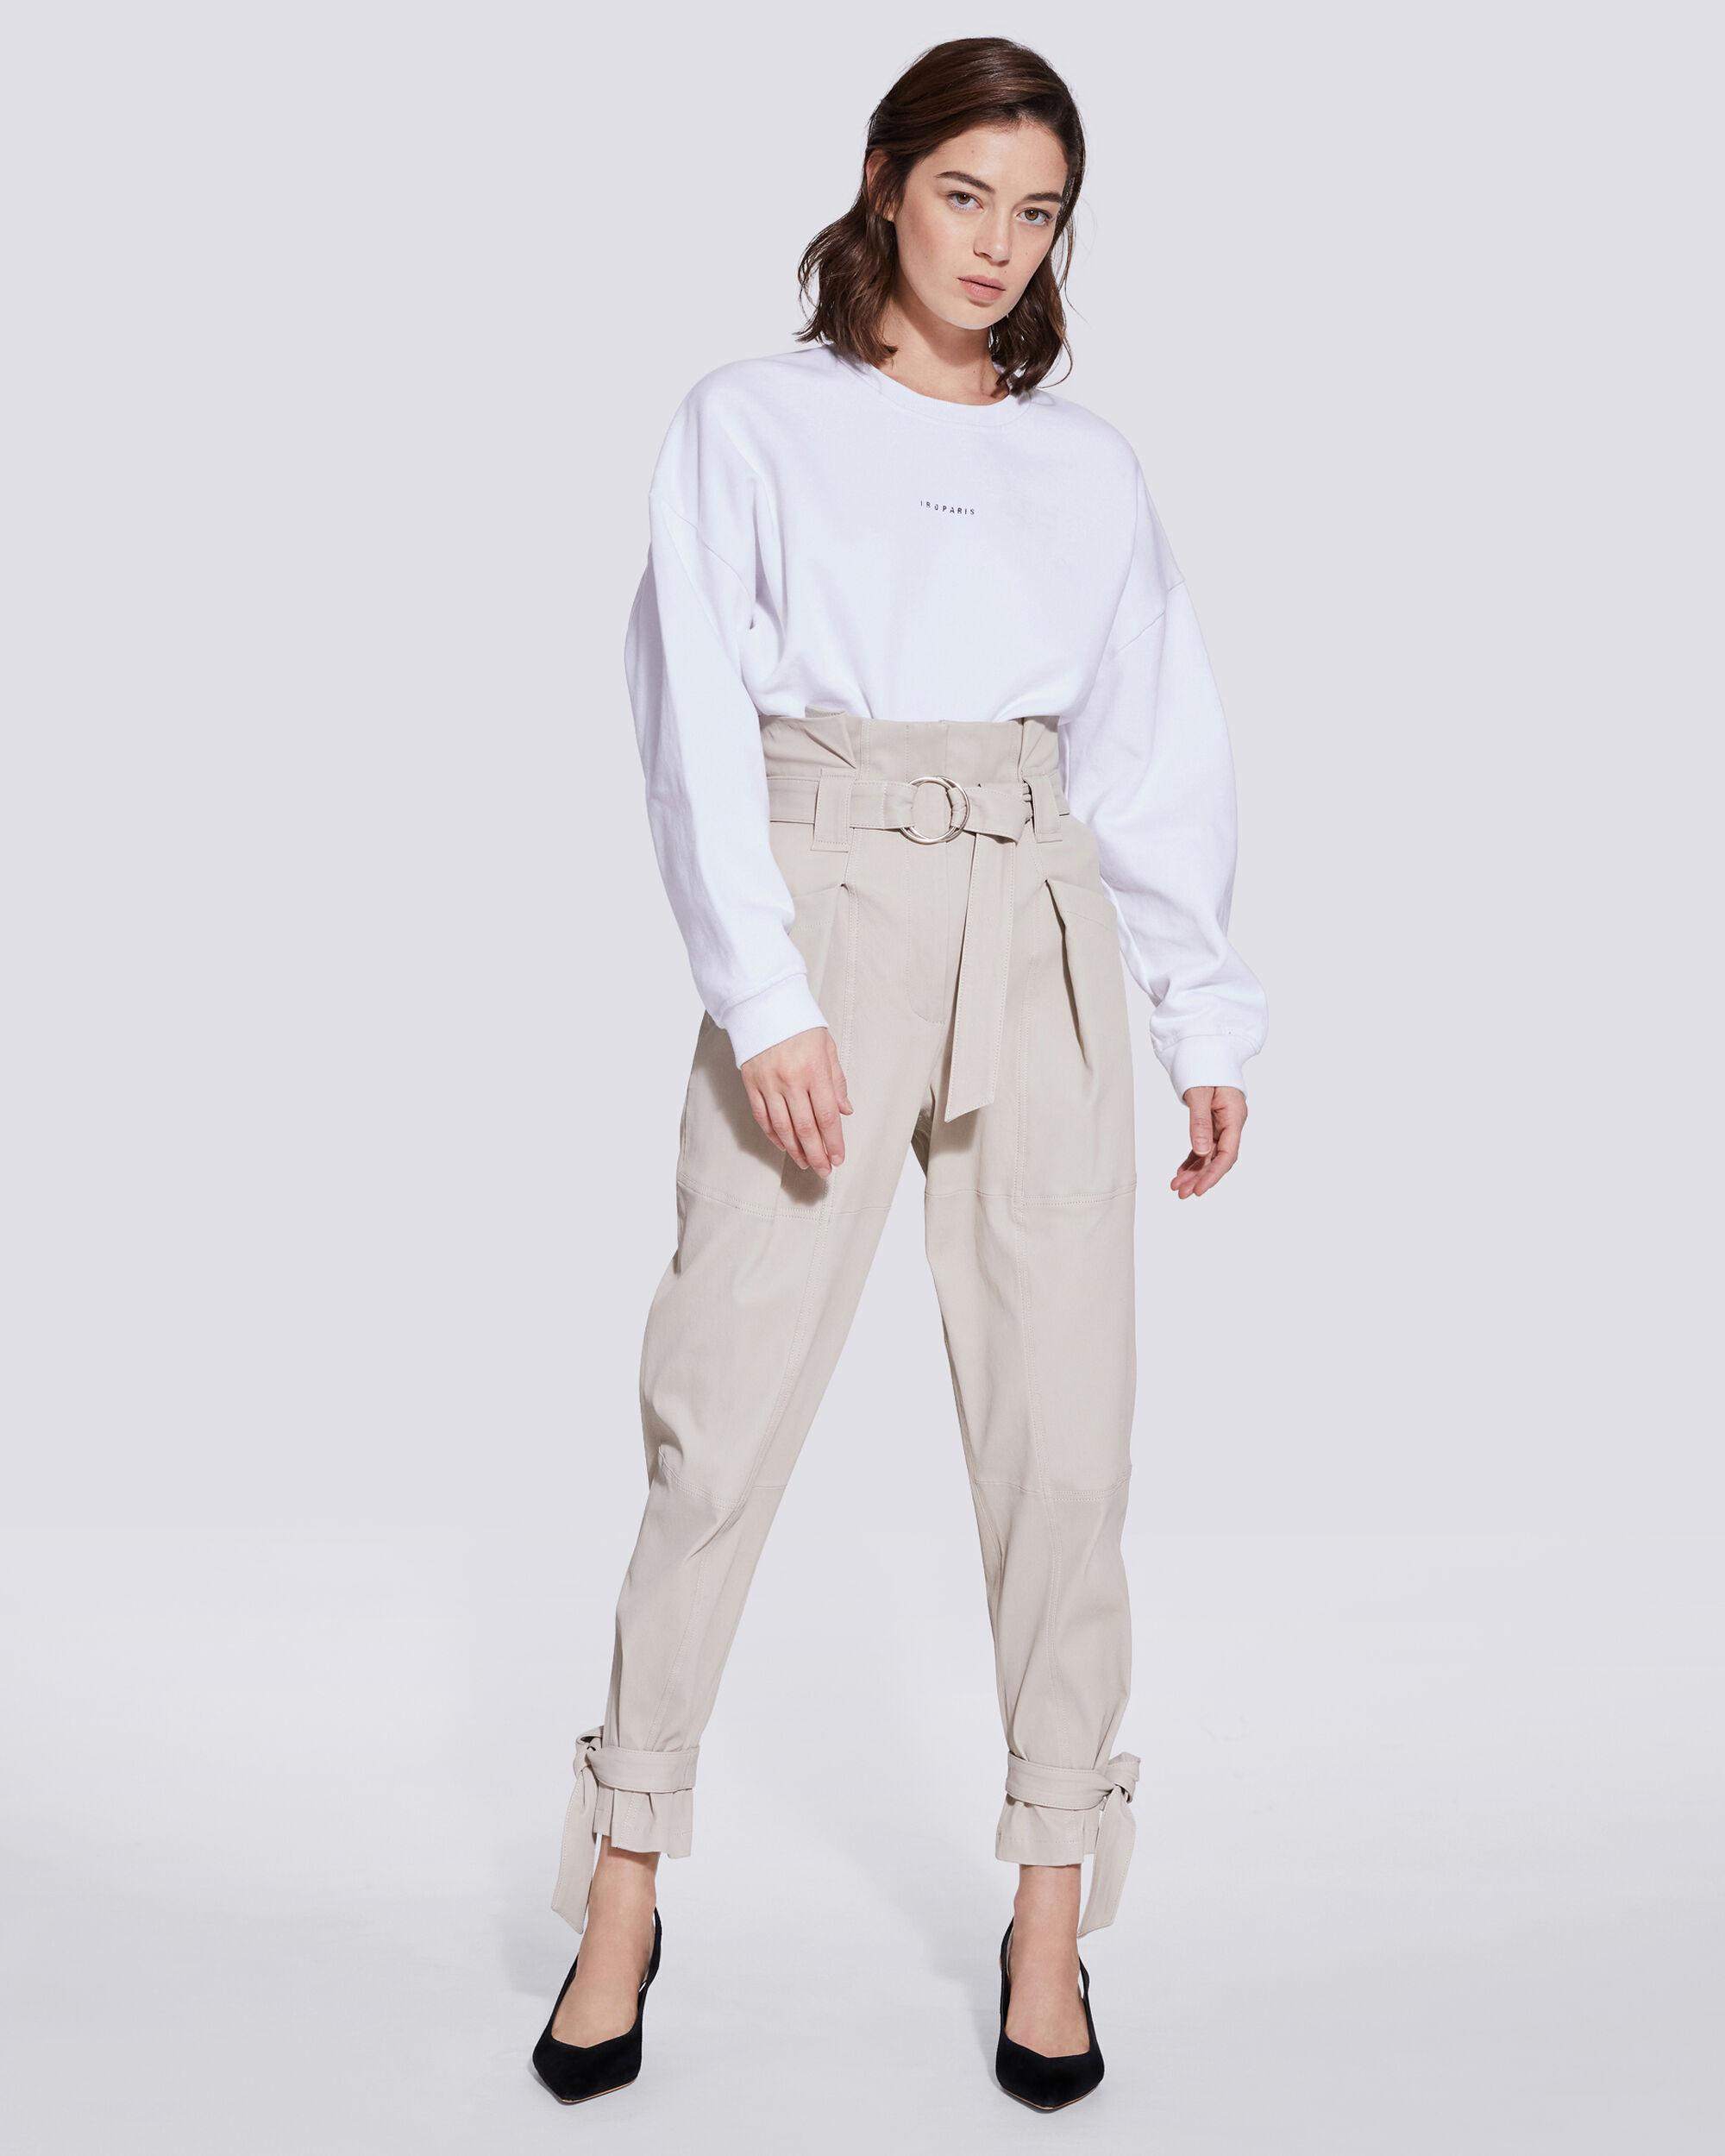 LIMEST PAPERBAG LEATHER TROUSERS